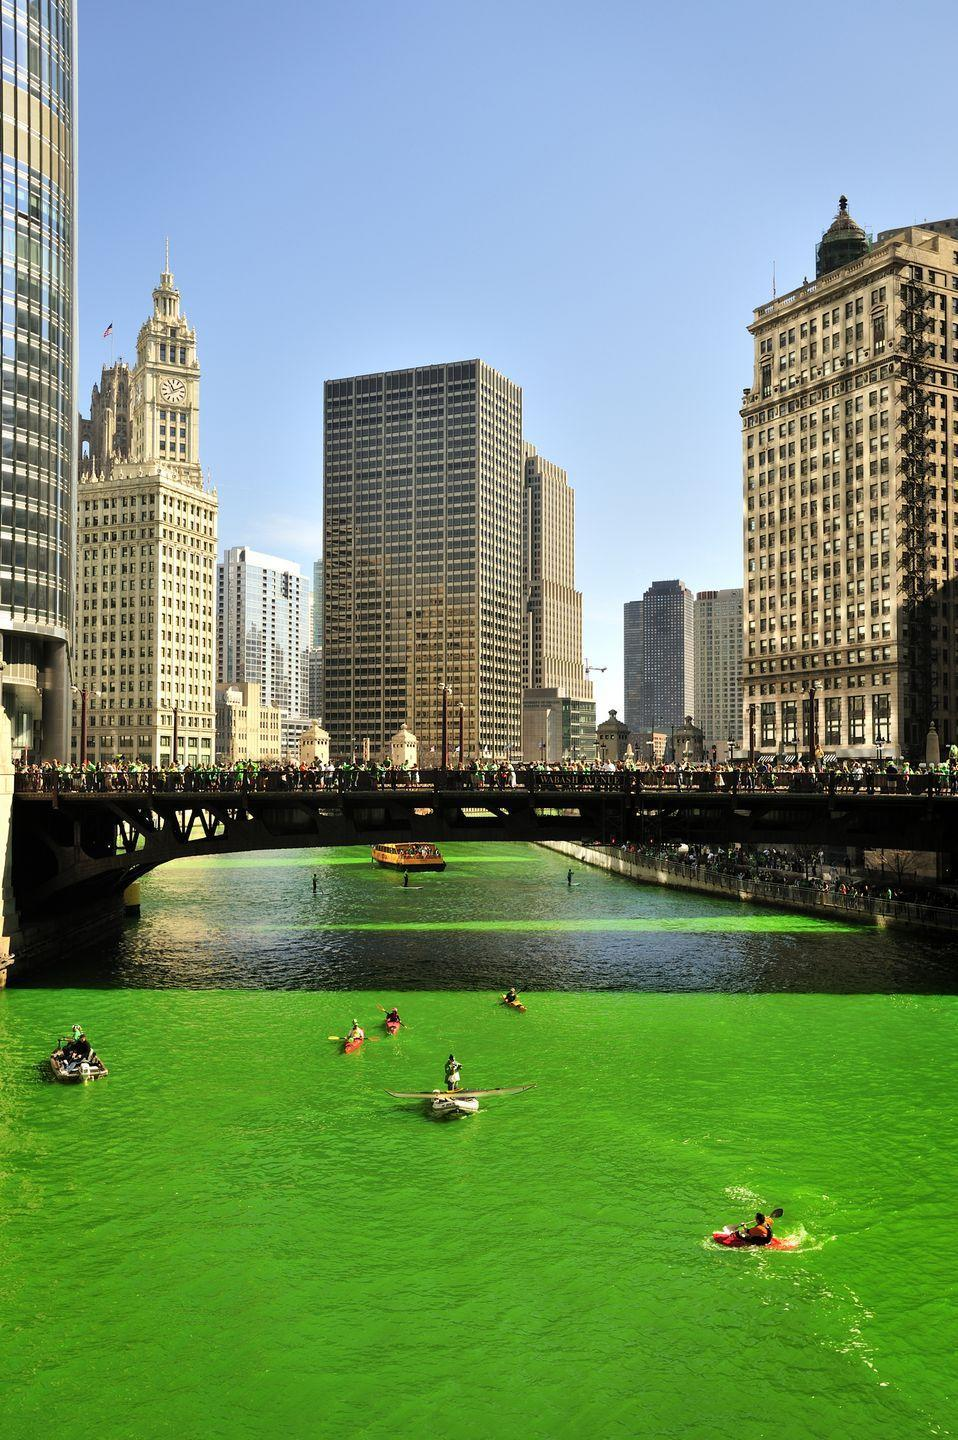 <p>Most famously, the Chicago River is dyed green every year for St. Patrick's Day. But there are other emerald landmarks you can see, like the Empire State Building, Irish Parliament building, and Sydney Opera house, which are all lit up green. Even Niagara Falls gets doused for a verdant glow.</p>